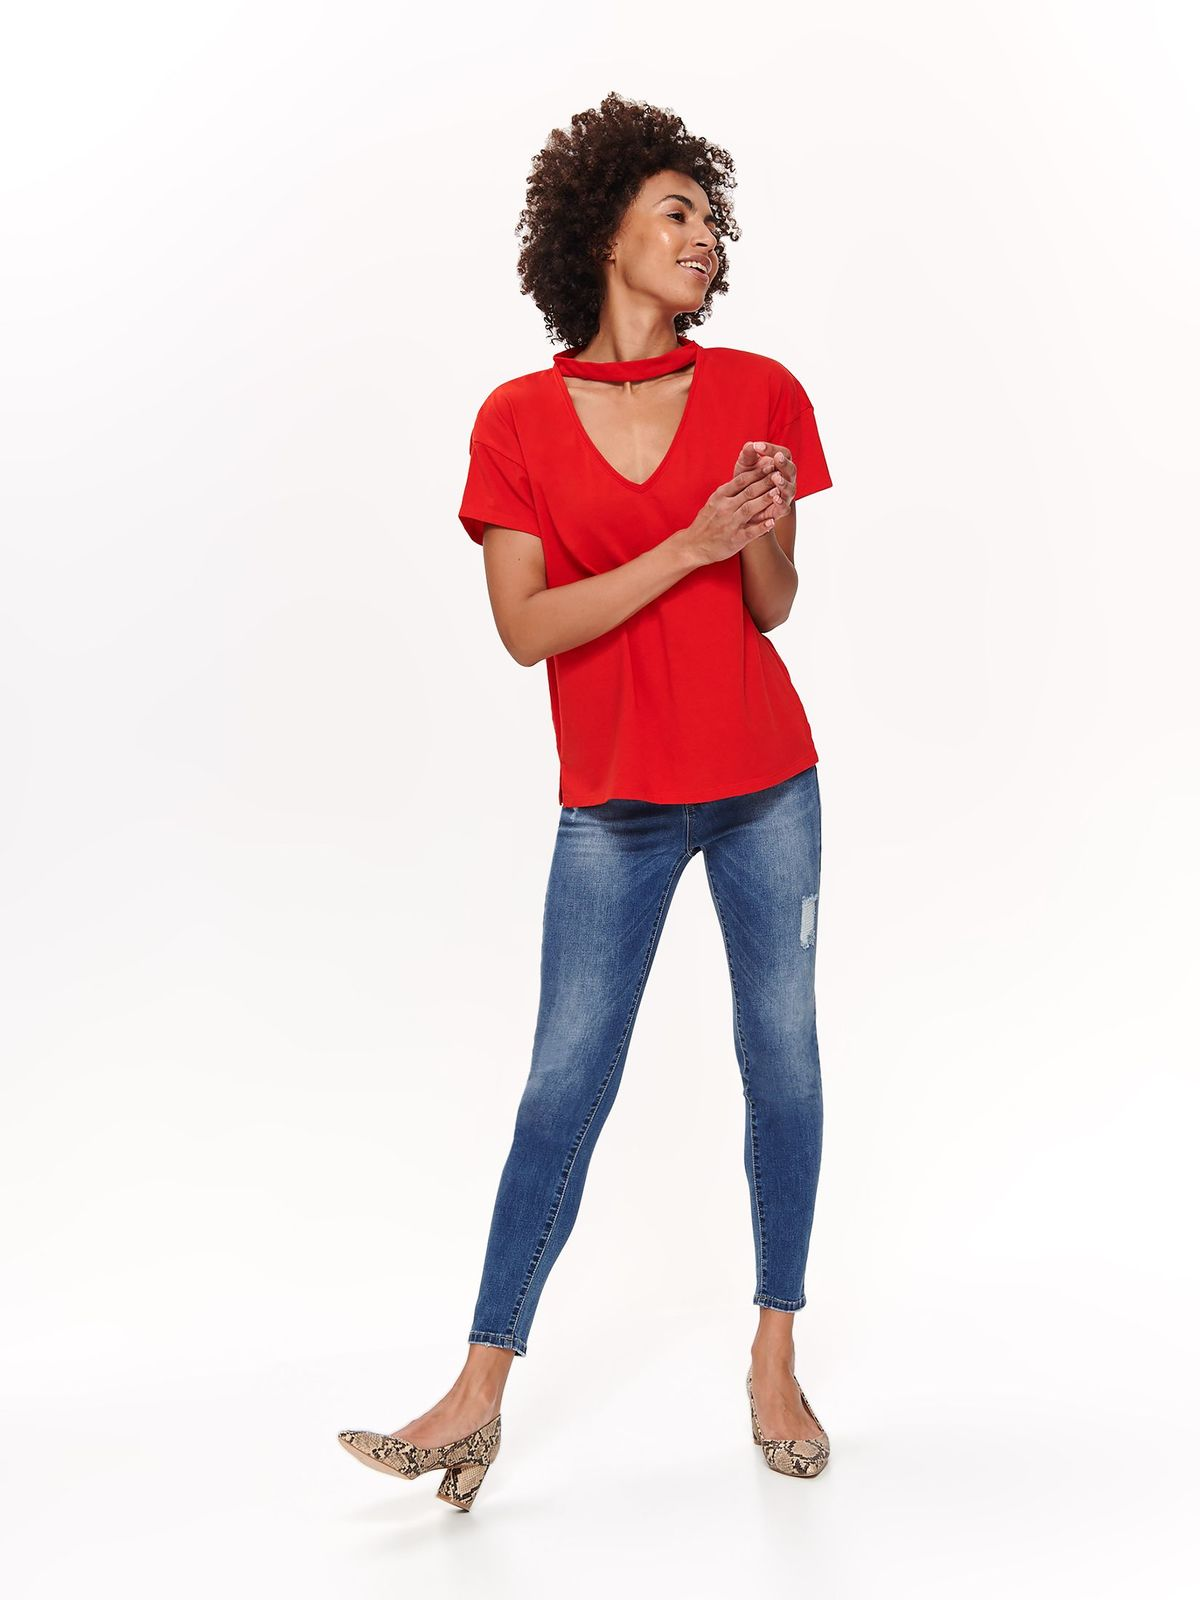 Top Secret red casual flared t-shirt short sleeve cotton cut-out bust design